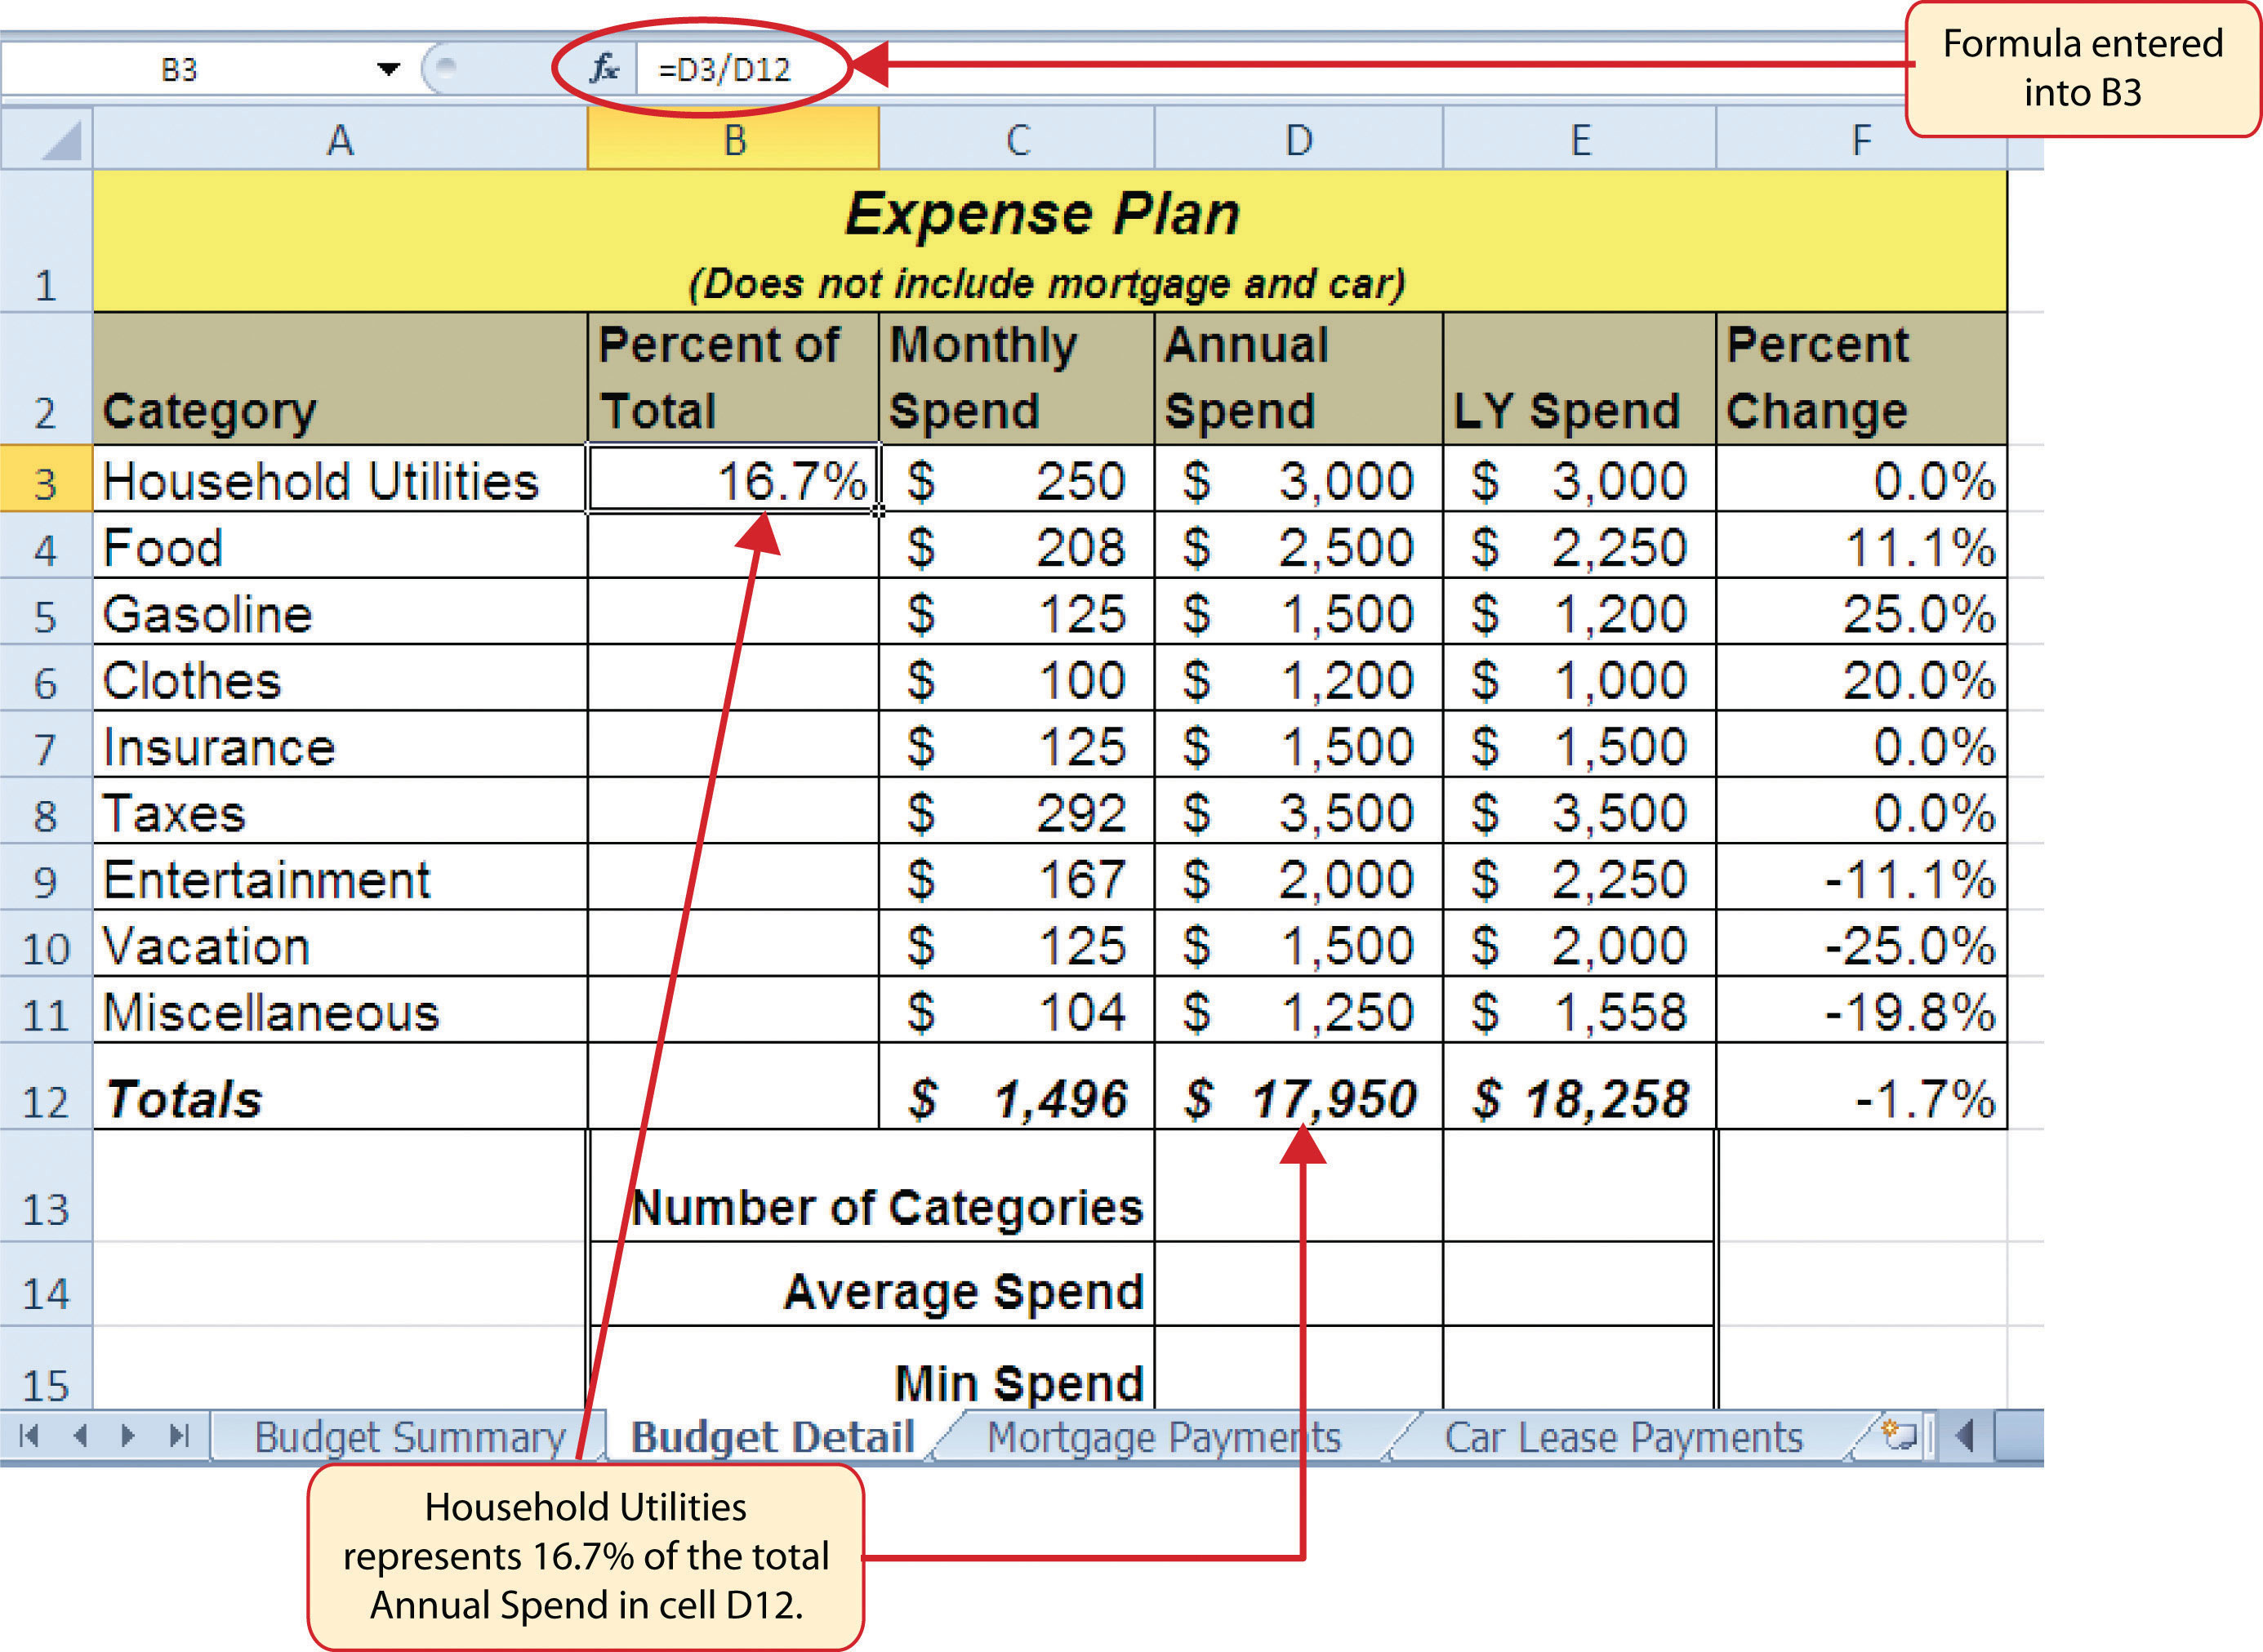 Contractor Tax Calculator Spreadsheet Intended For Contractor Tax Calculator Spreadsheet – Spreadsheet Collections